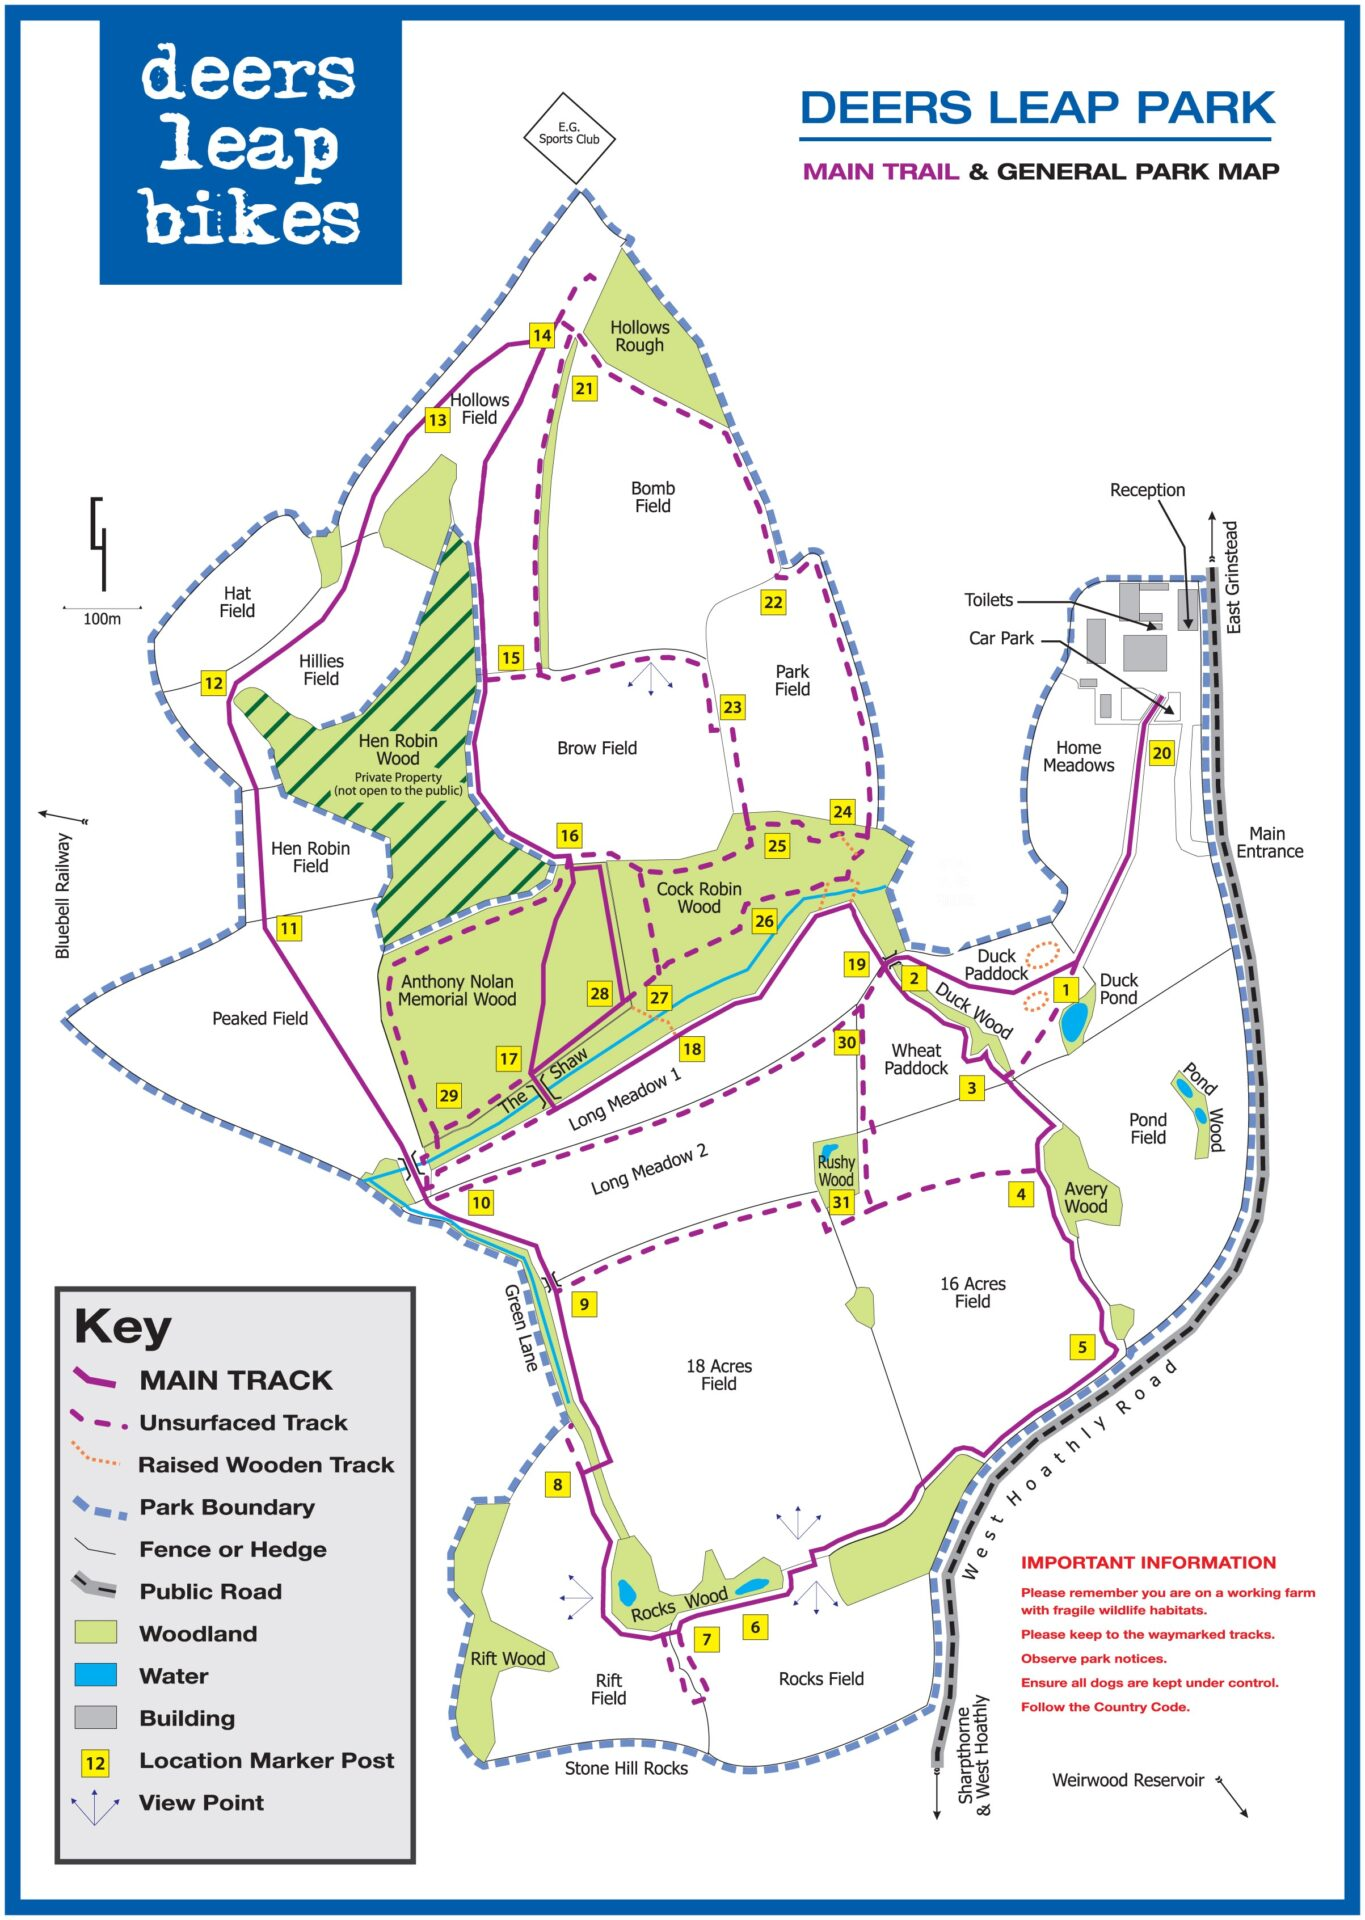 Map of Deers Leap mountain biking park Sussex